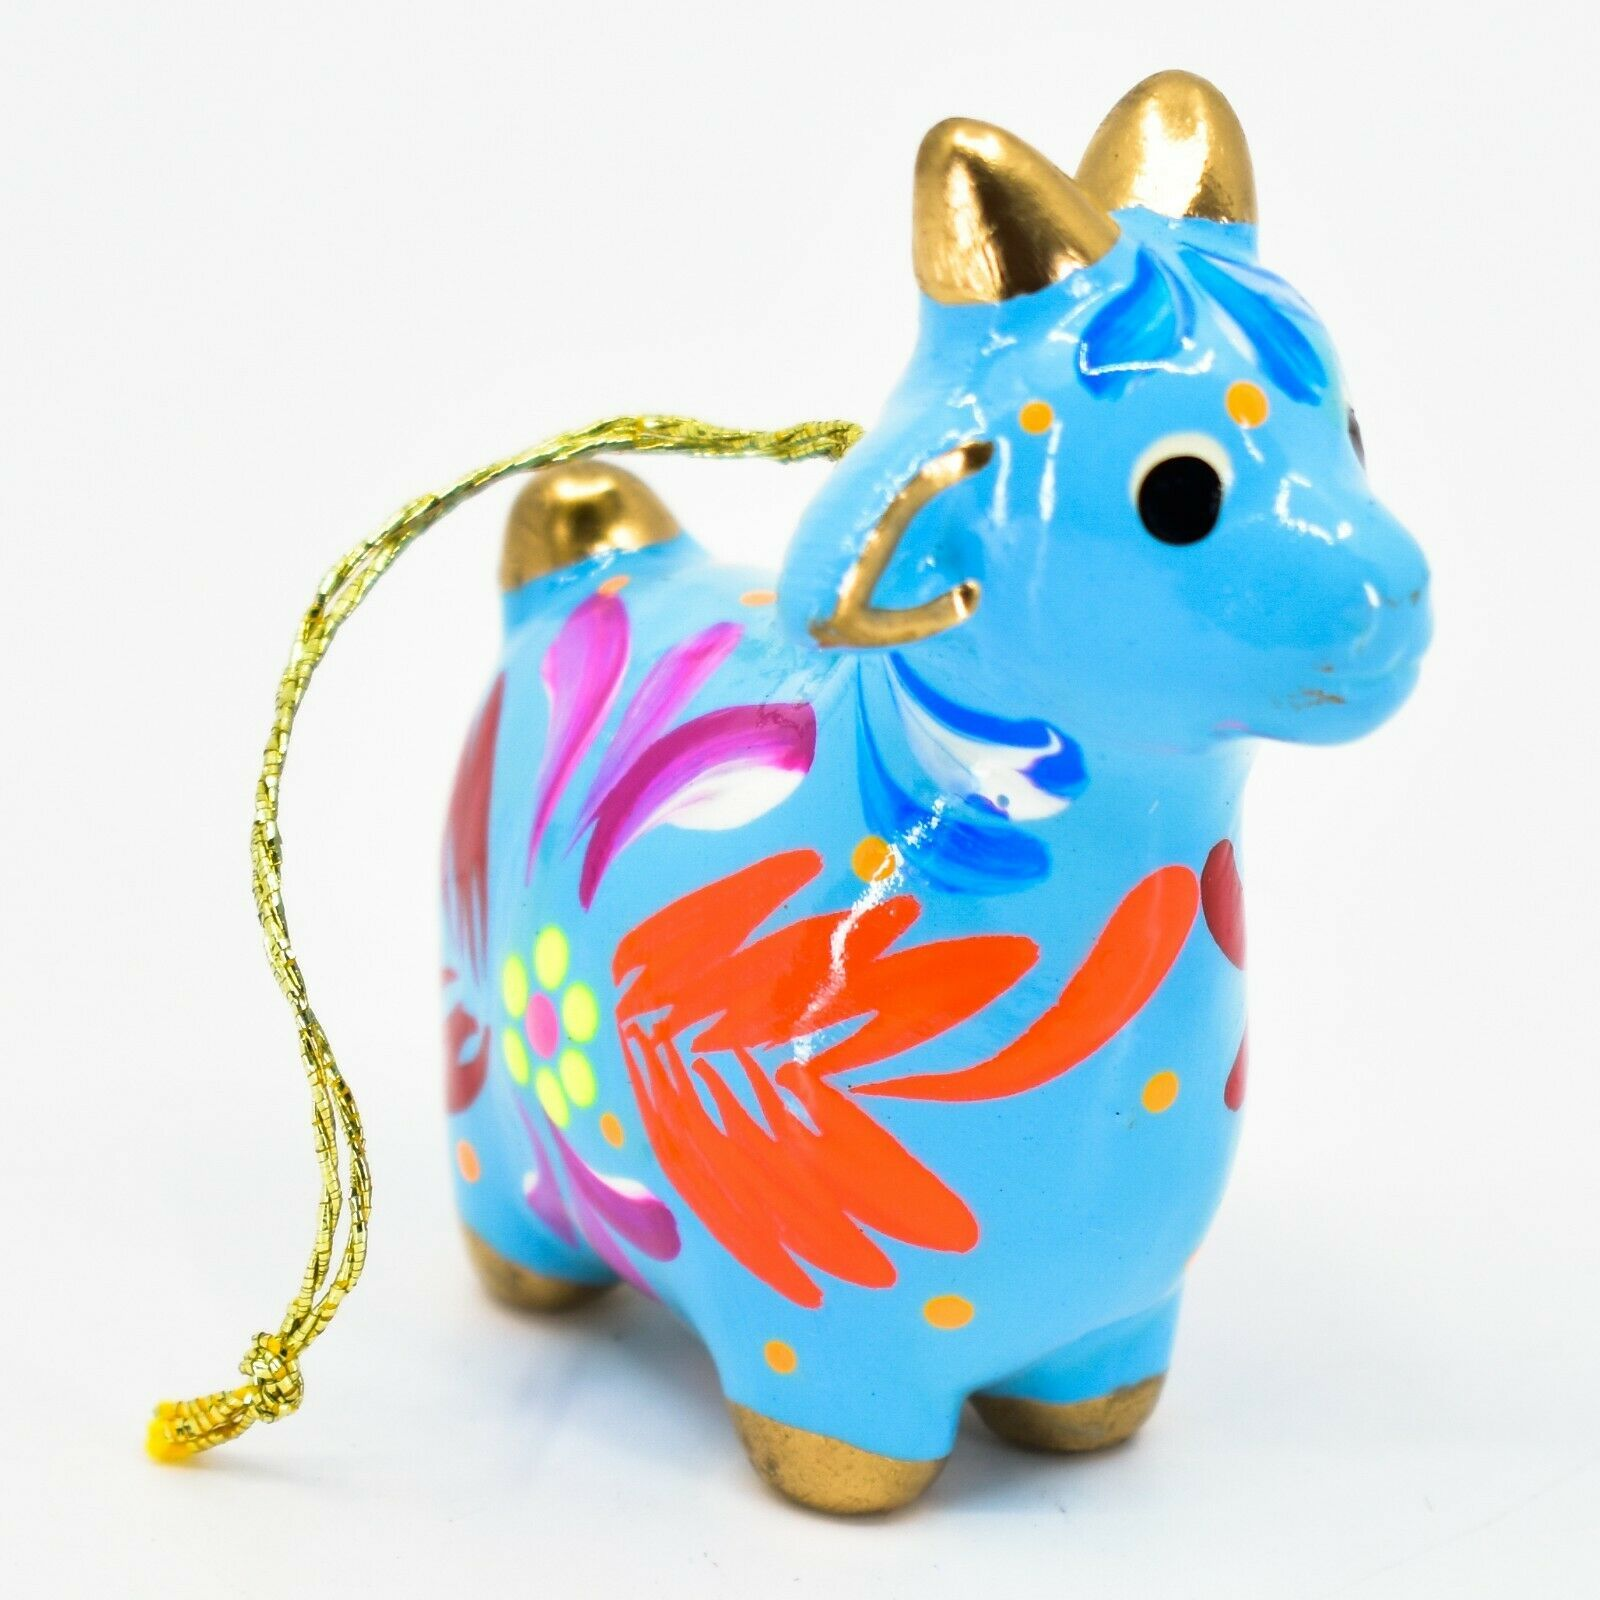 Handcrafted Painted Ceramic Blue Goat Country Farm Confetti Ornament Made Peru